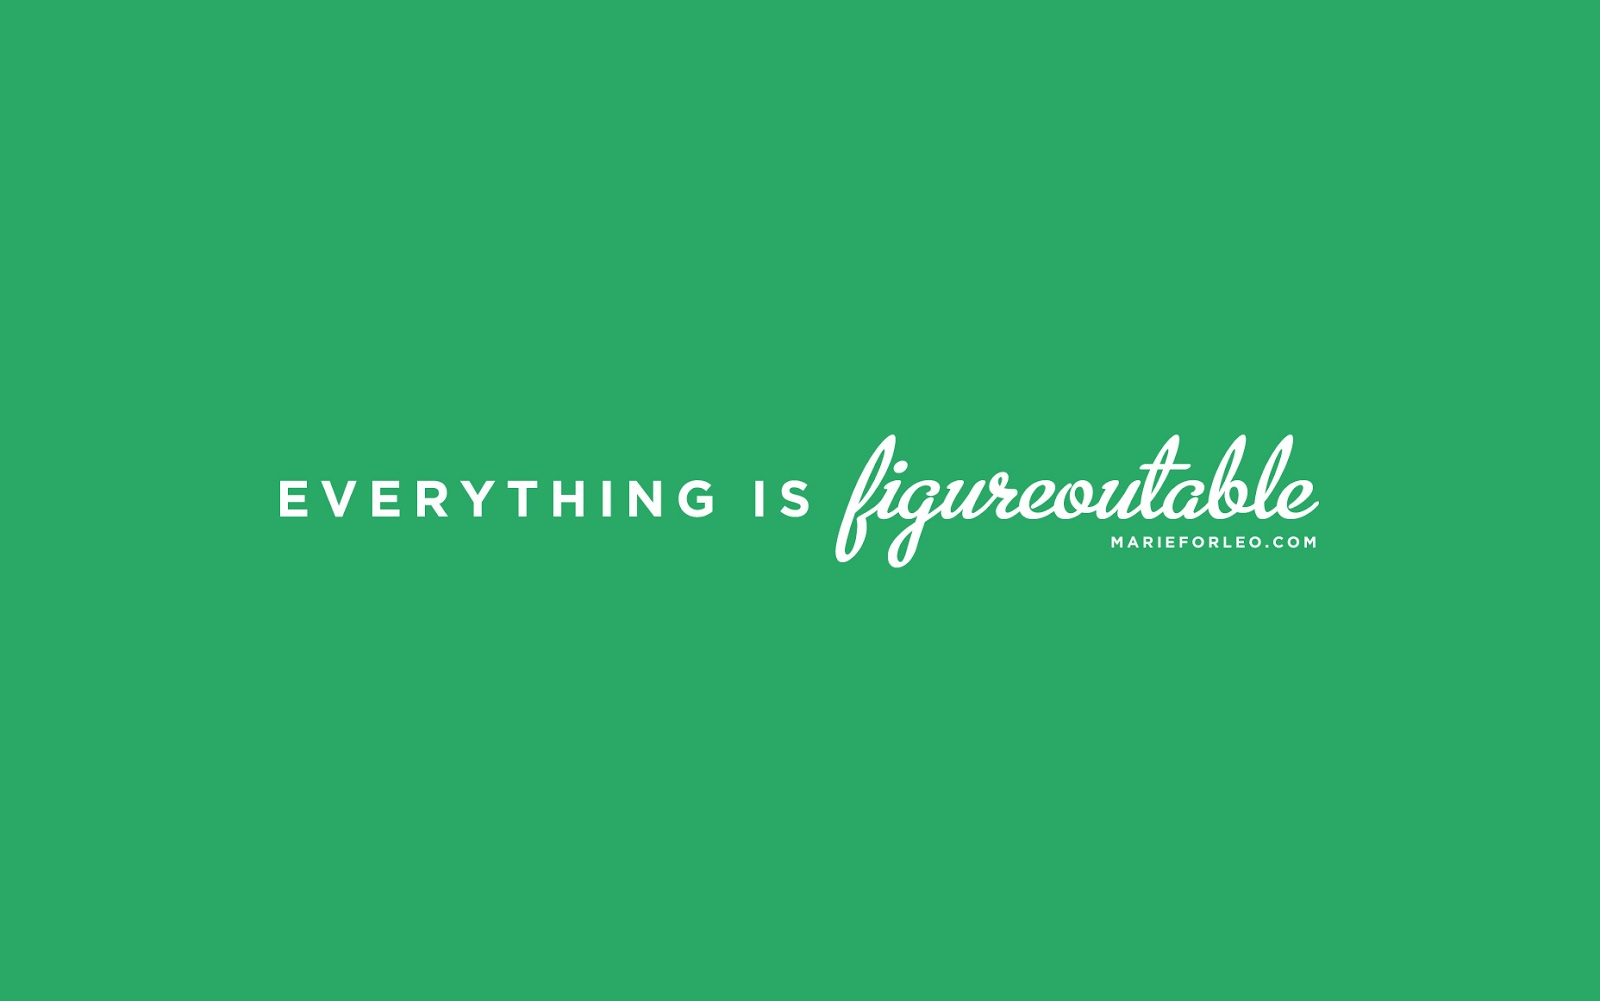 Inspiring words - everything is figureoutable - quote and wallpaper download by Marie Forleo